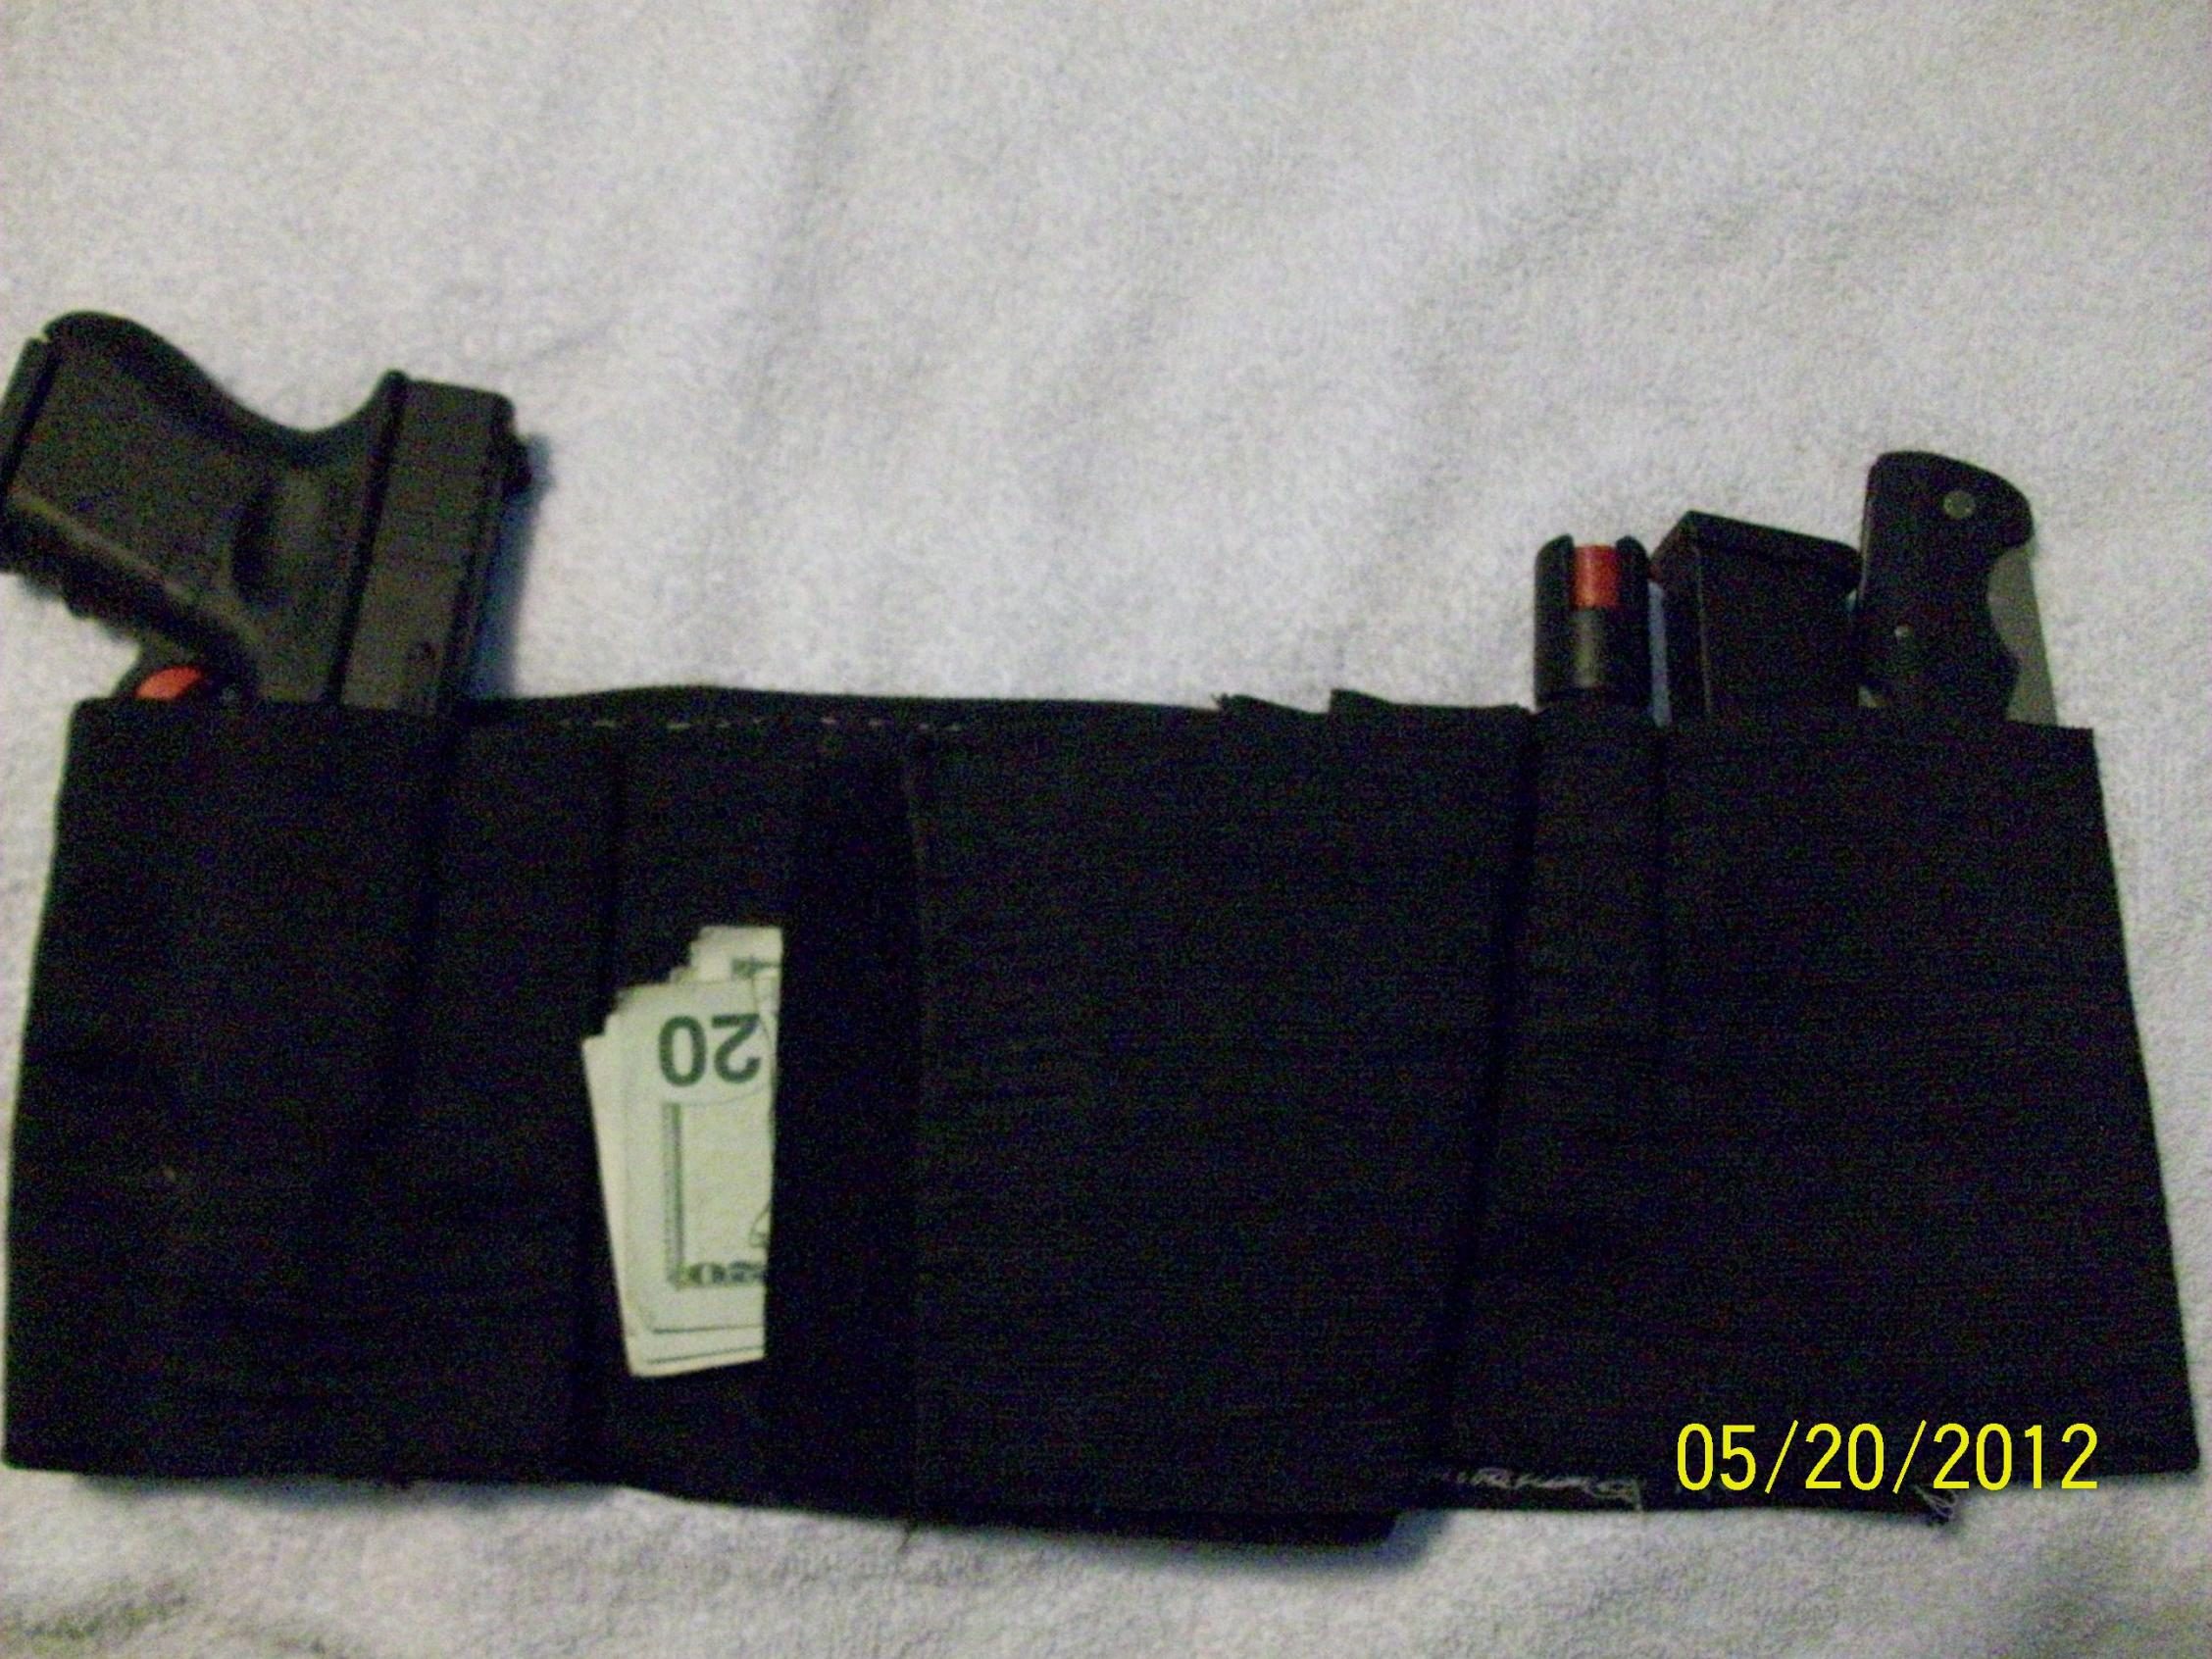 finally broke down and bought a glock 26-100_1837.jpg